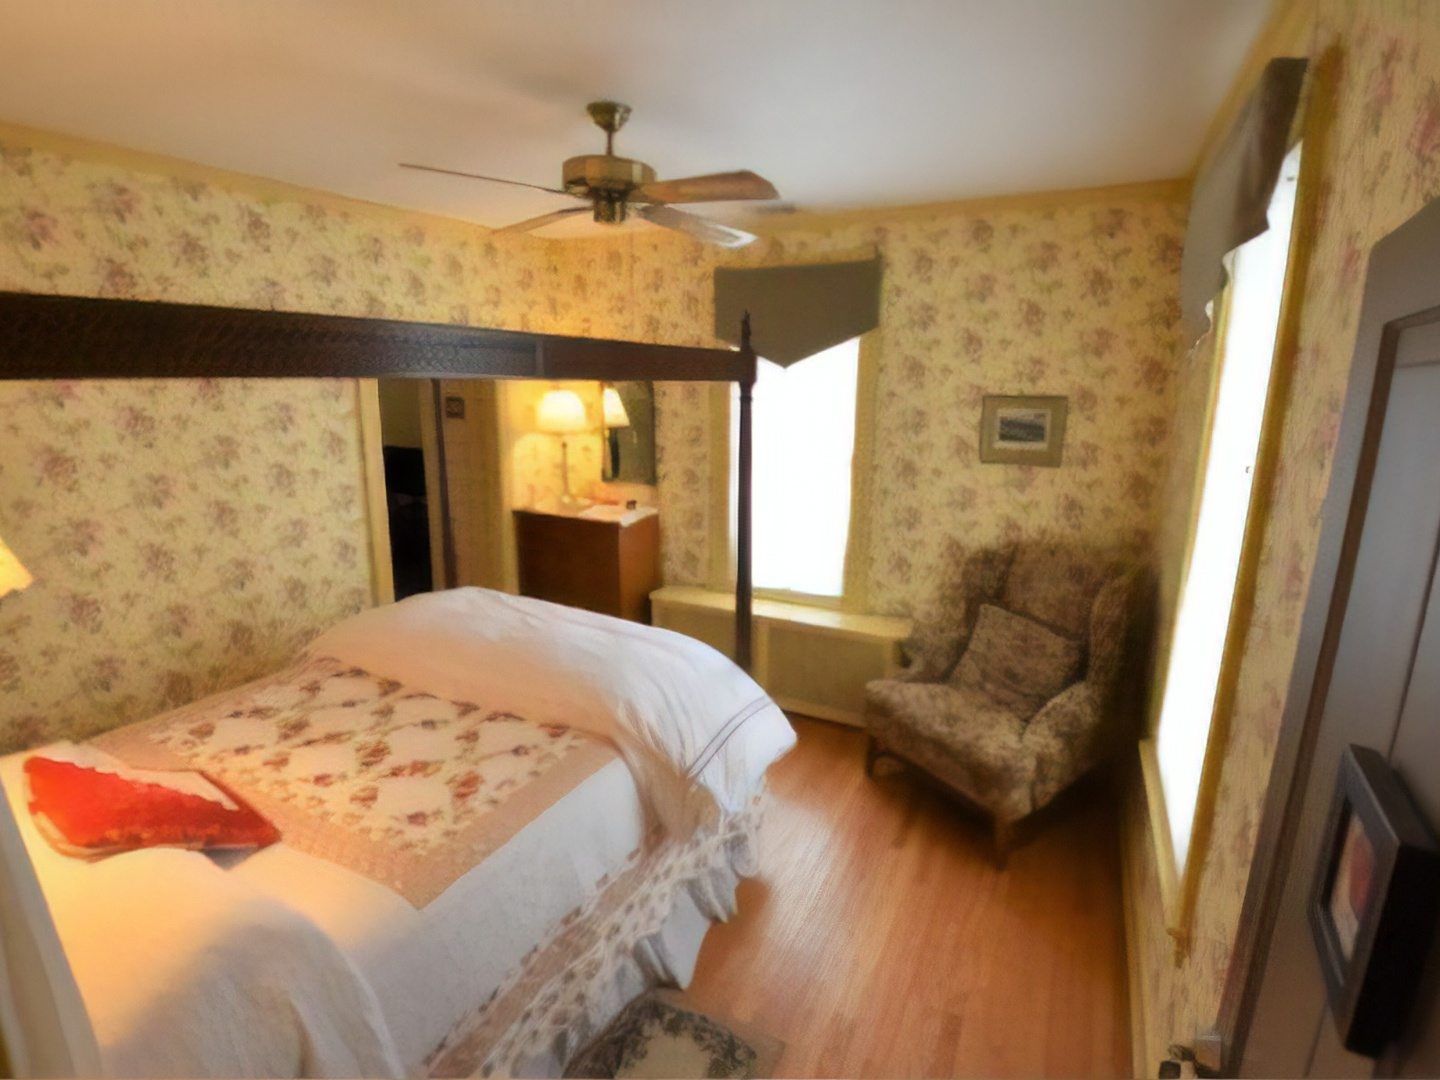 A double bed in a room at Apple Bin Inn Bed and Breakfast.